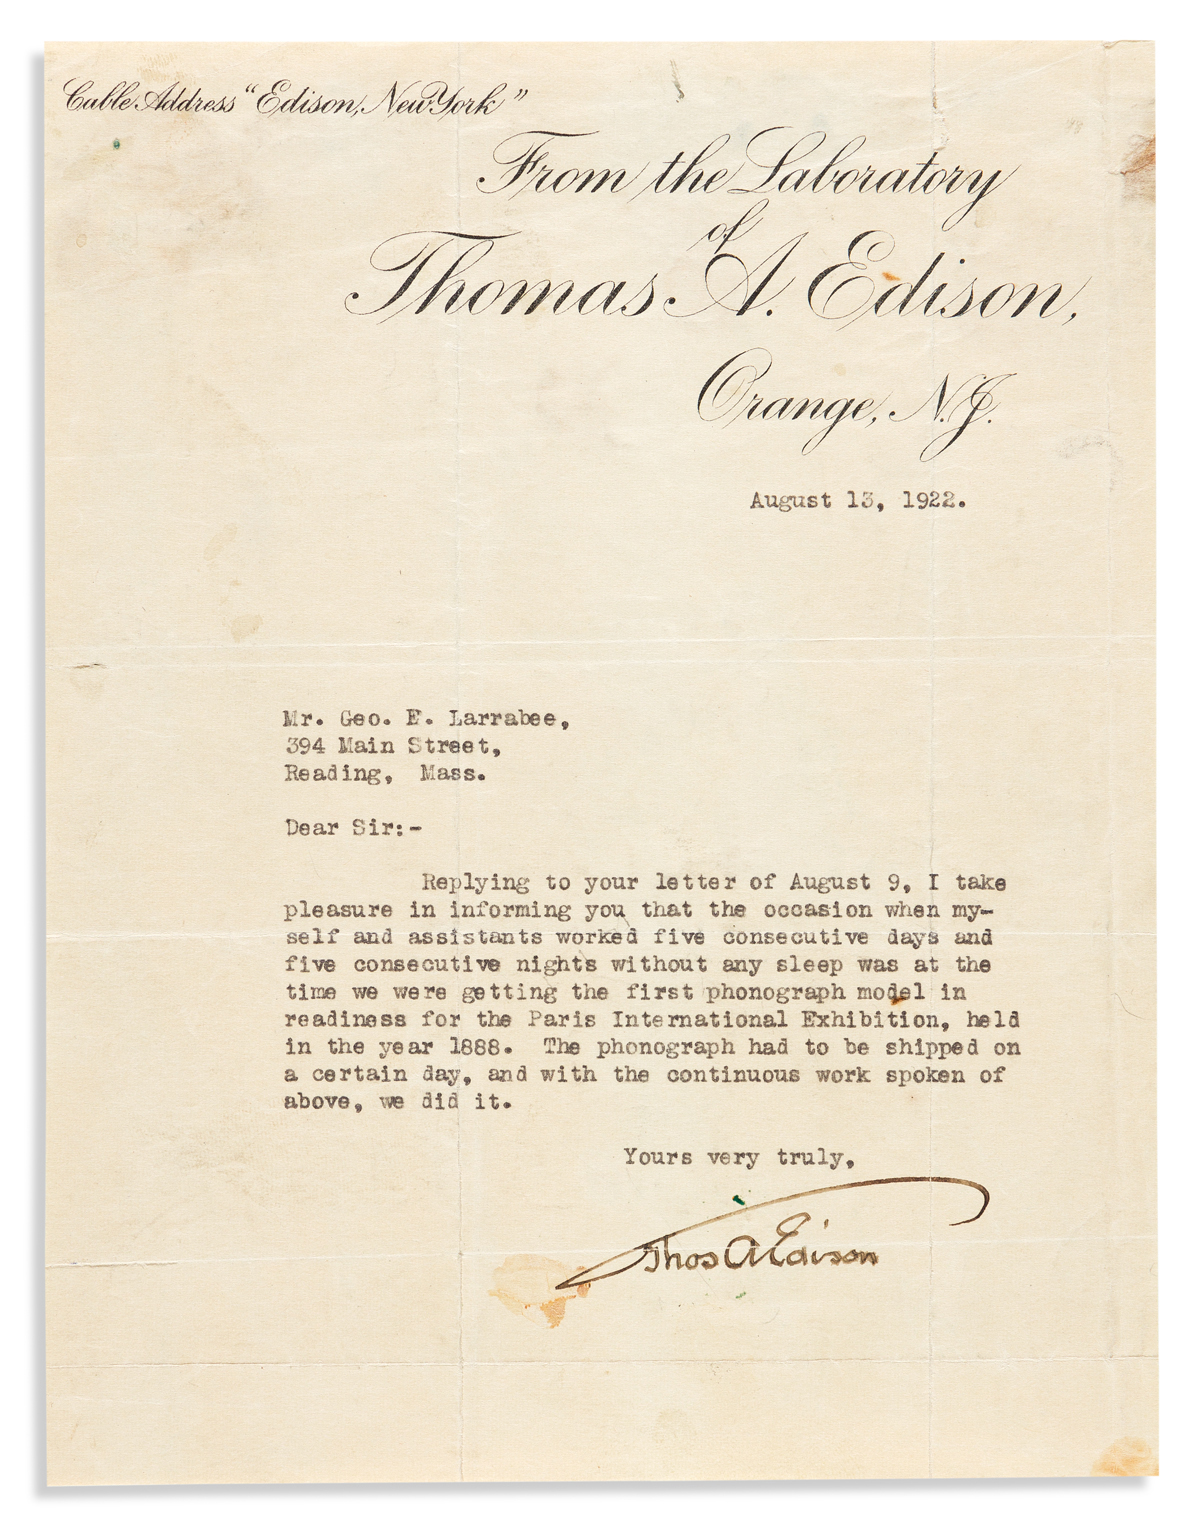 (INVENTORS.) EDISON, THOMAS A. Typed Letter Signed, to George E. Larrabee,